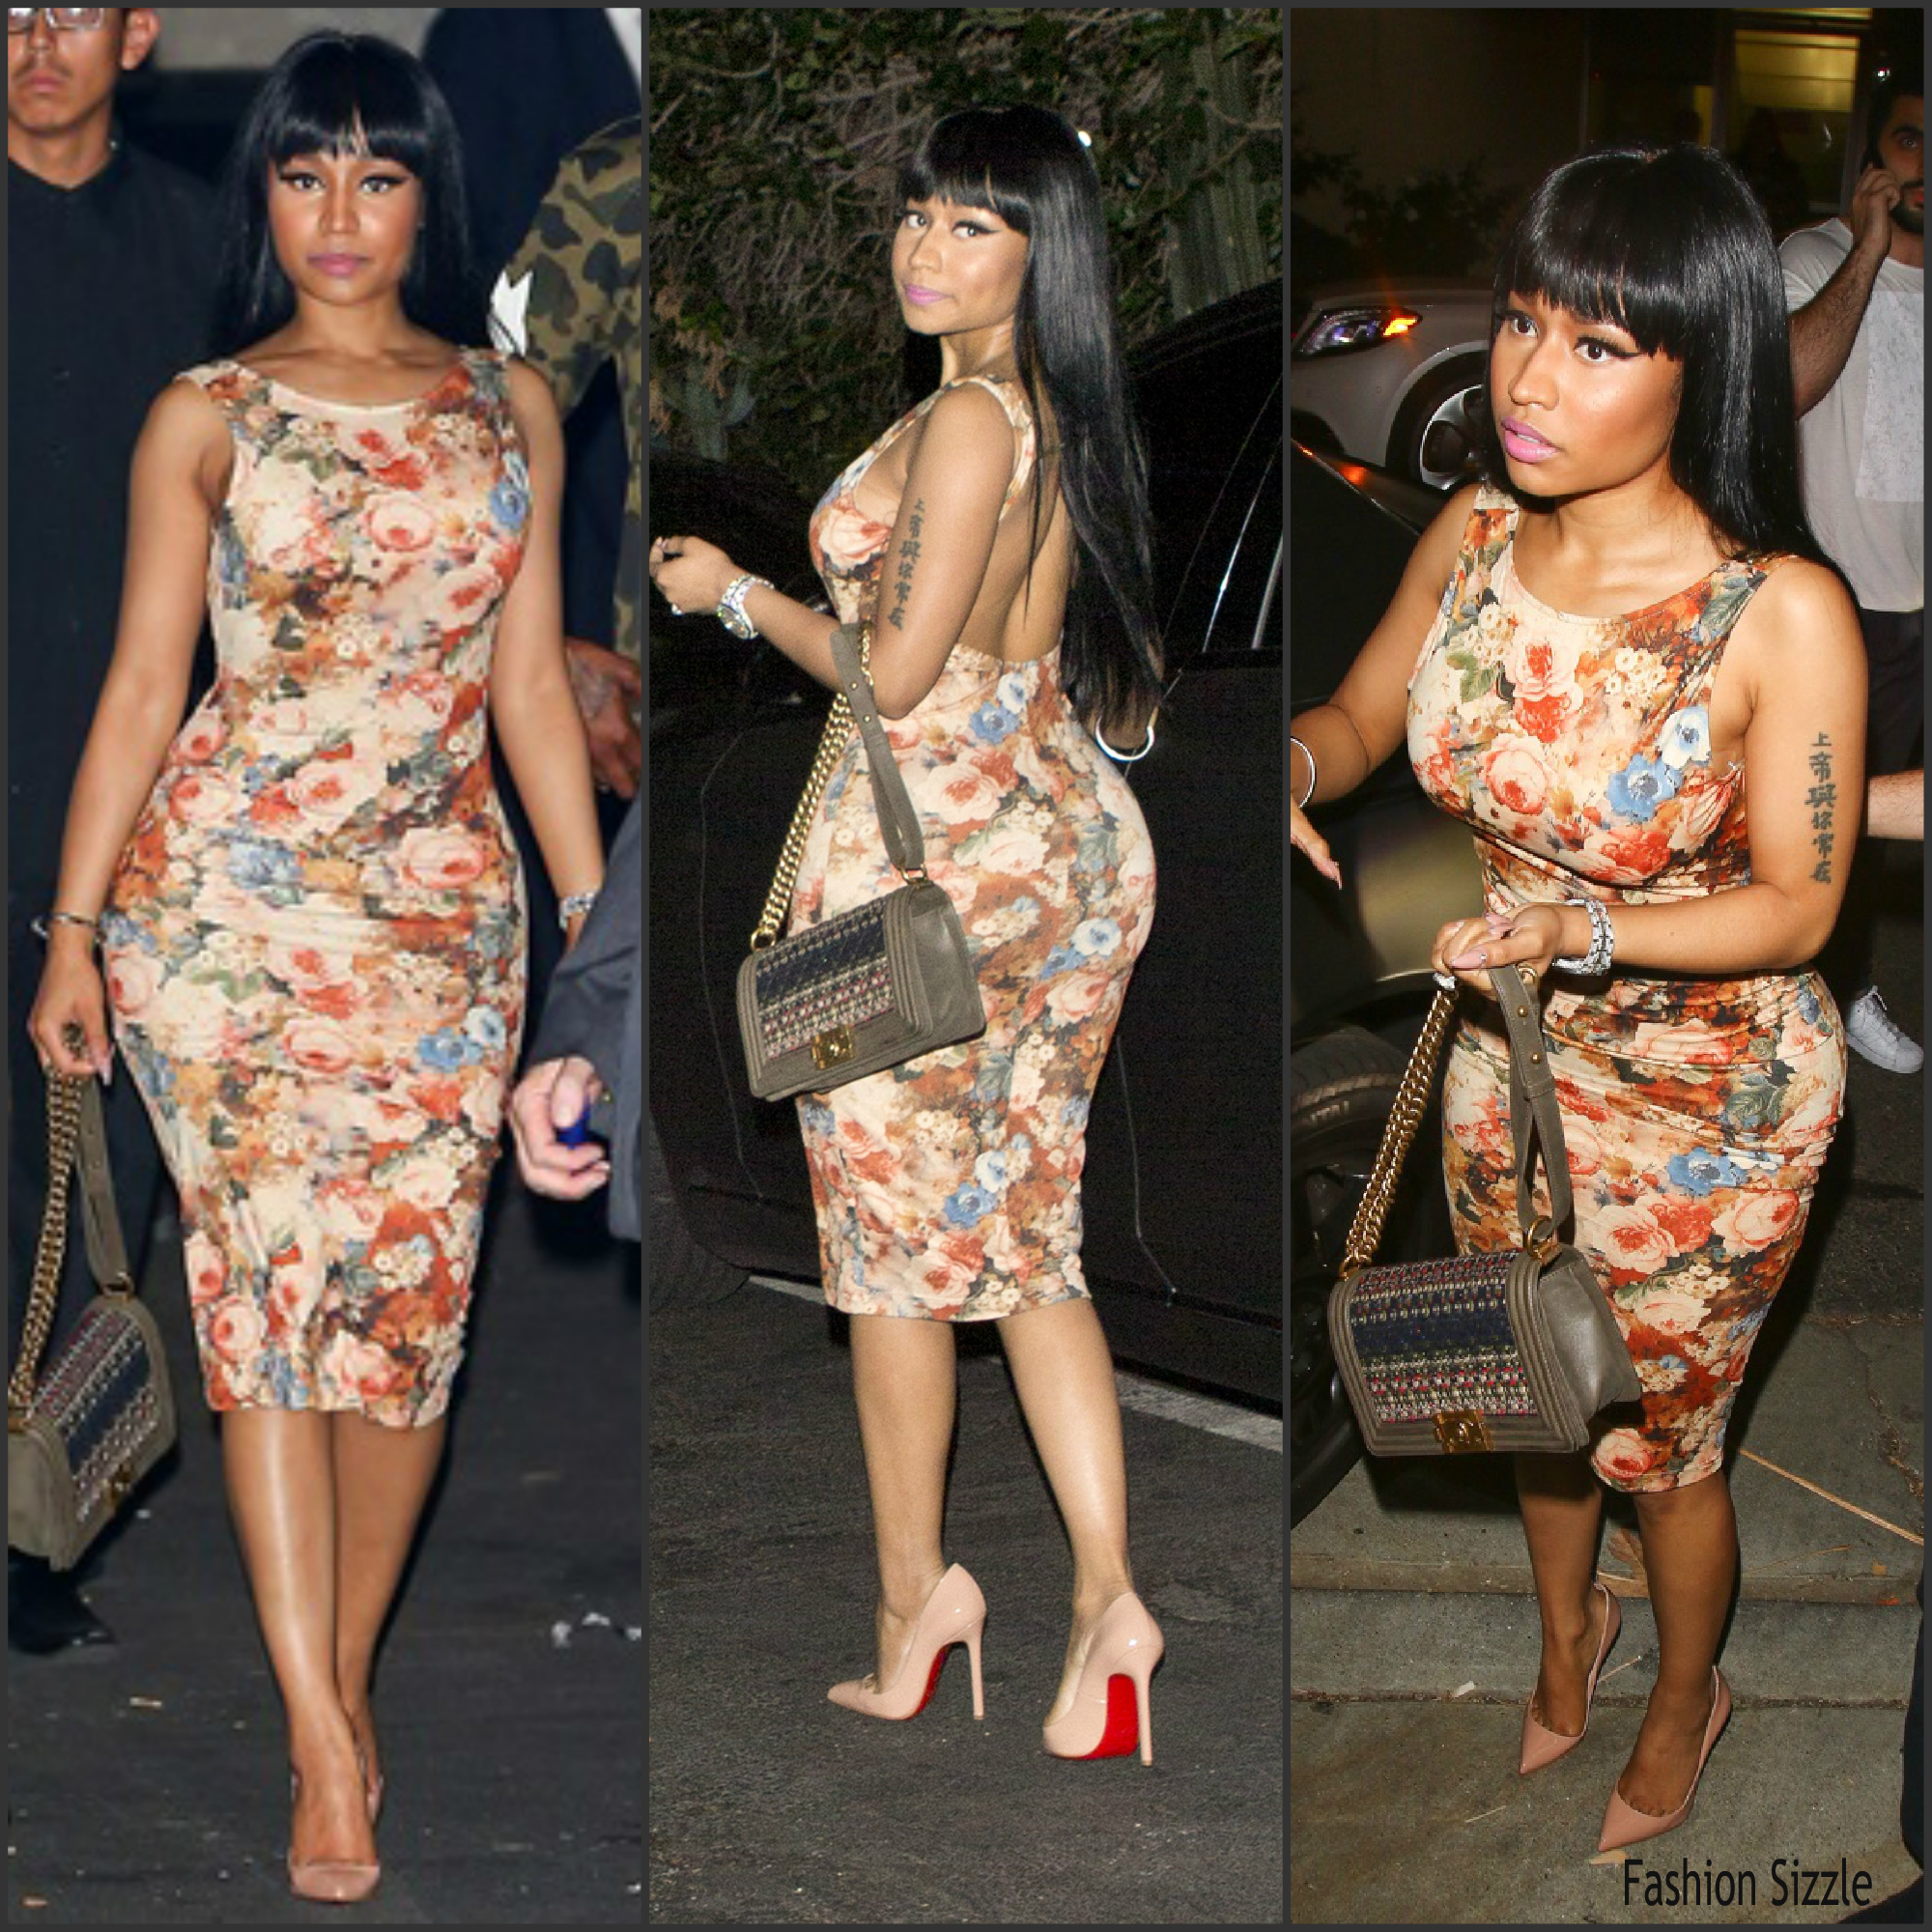 Nicki Minaj In Floral Dress 1oak In West Hollywood Ca Fashionsizzle